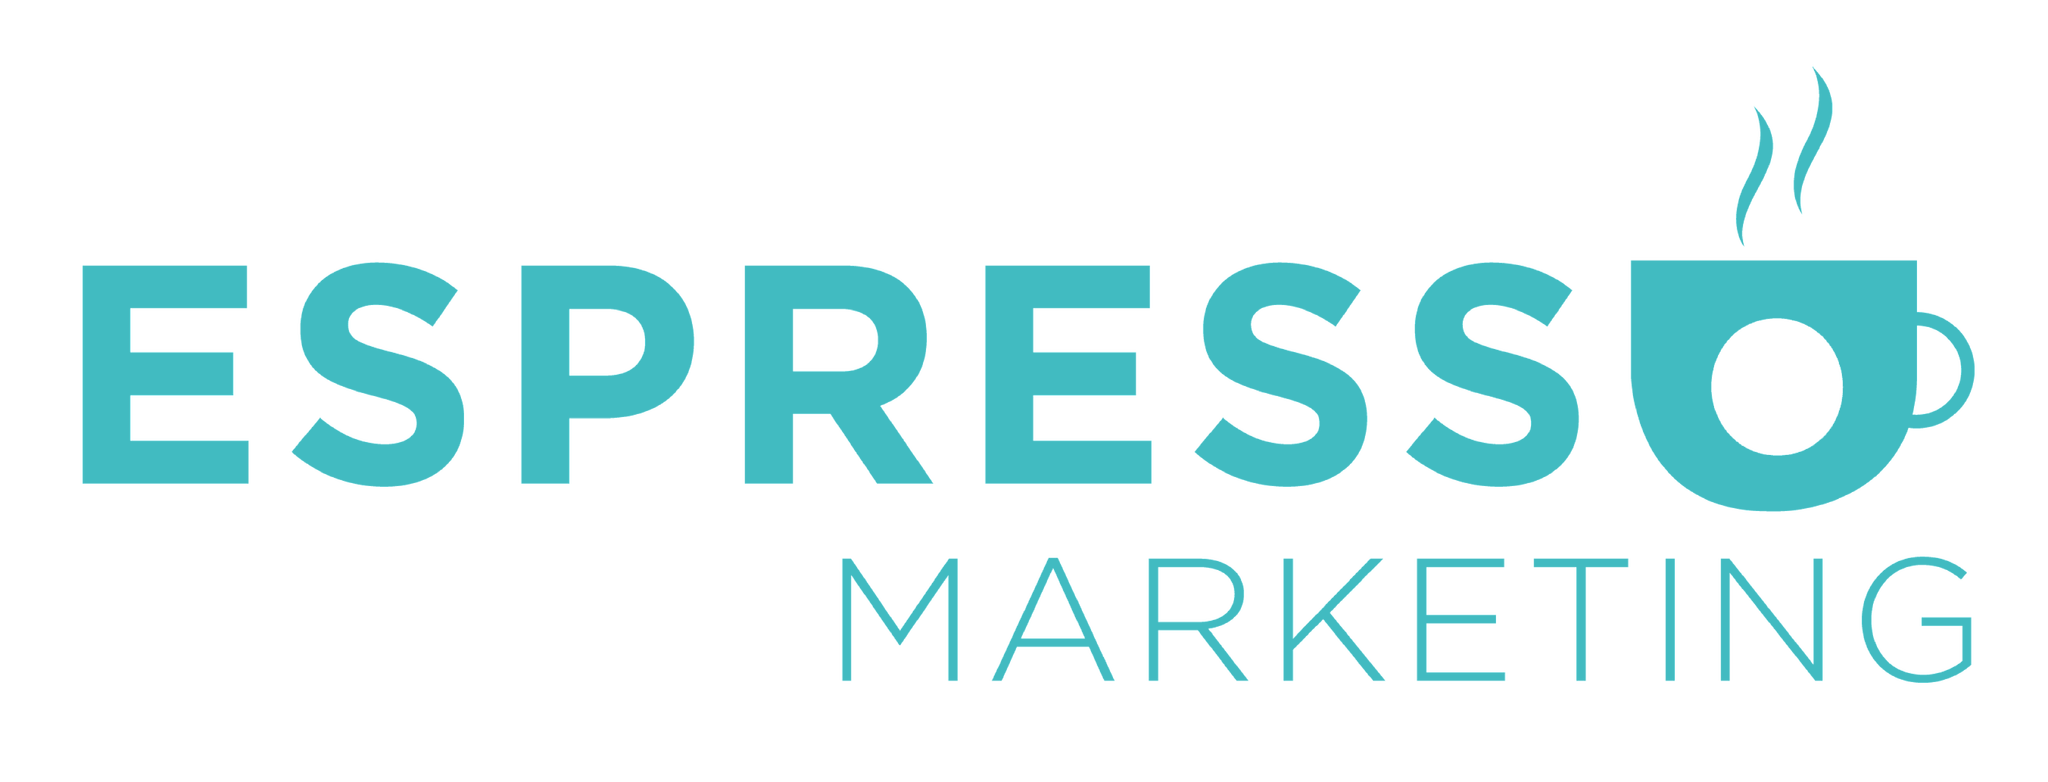 Espresso Marketing